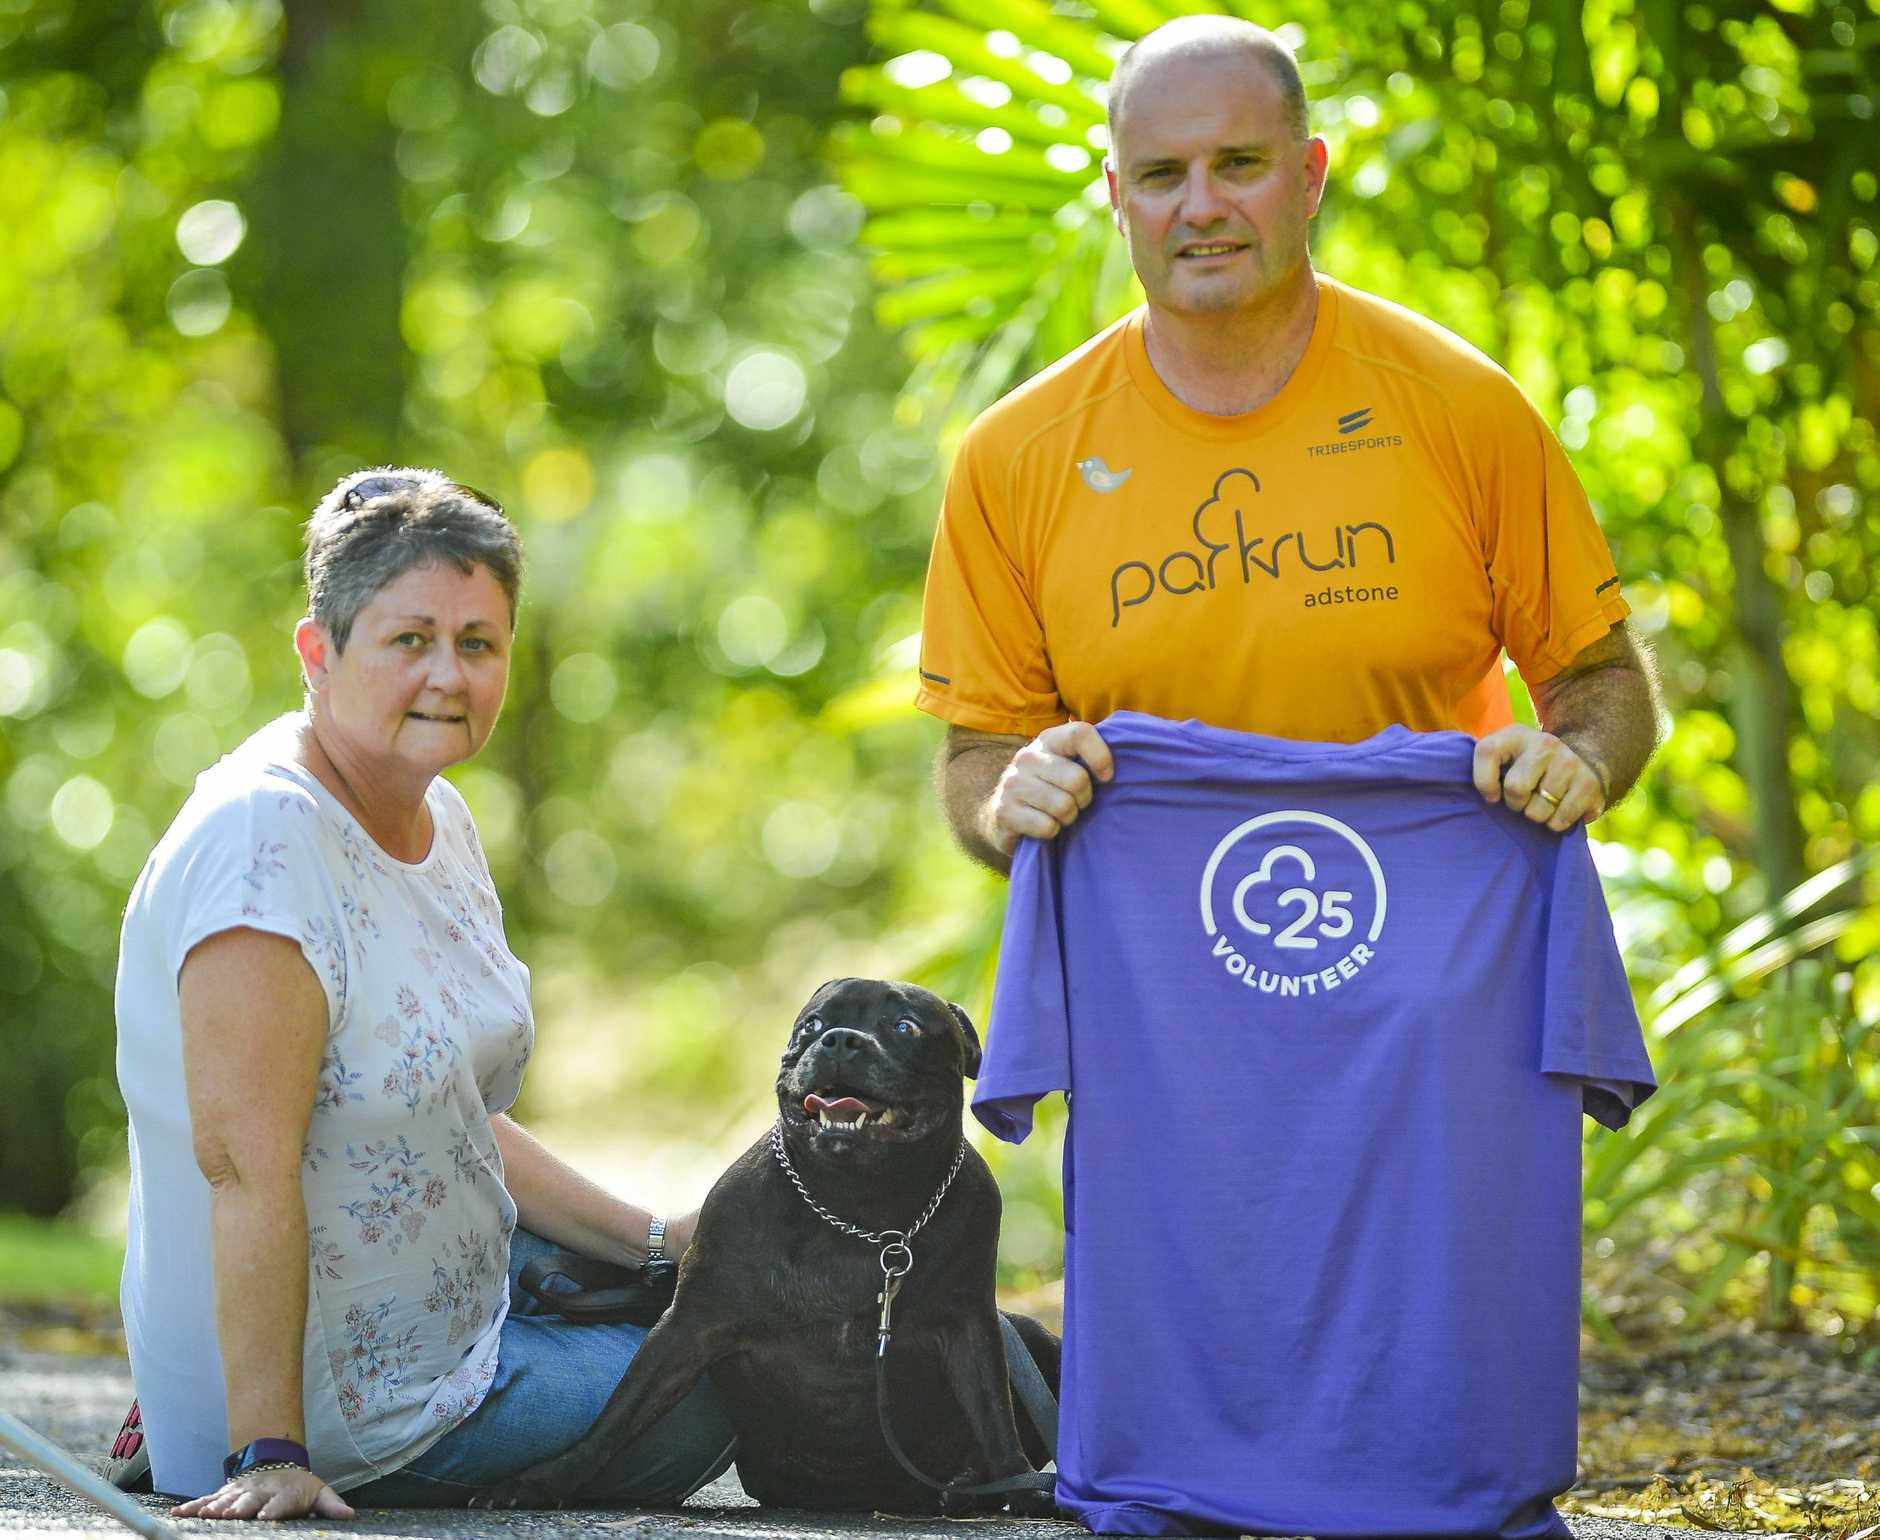 Carol Shuttleworth and dog Bo, with Steve Shuttleworth with the shirt he received after volunteering 25 times for Tannum sands Park Run.